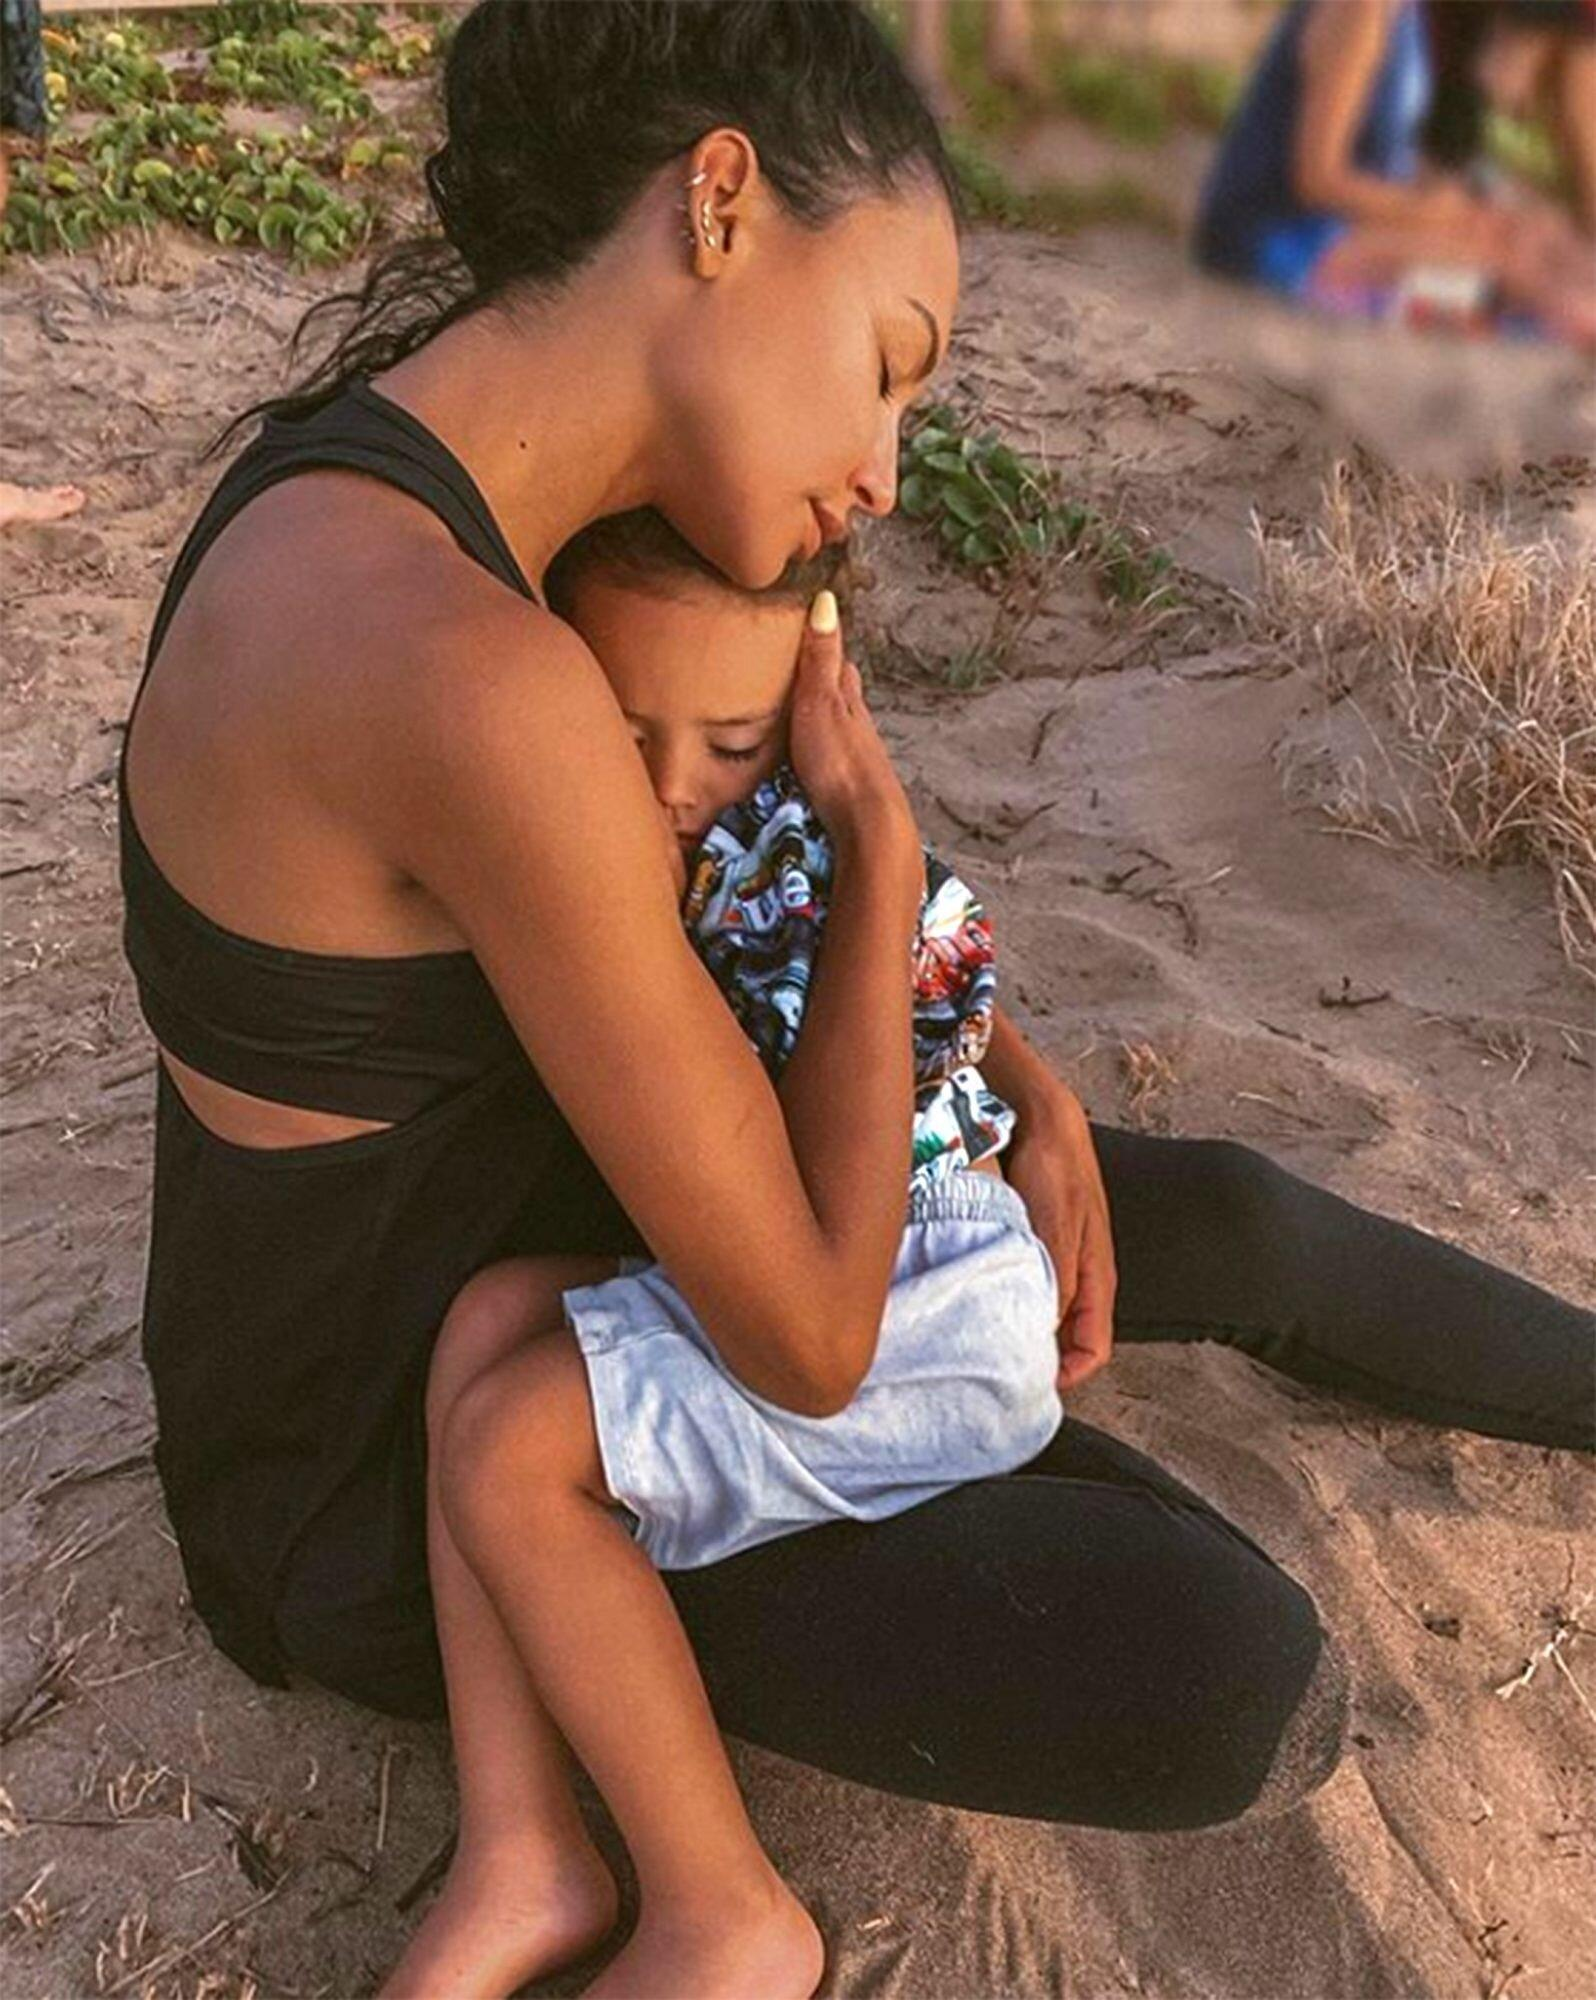 Naya Rivera Missing After 4-Year-Old Son Found Alone in a ...